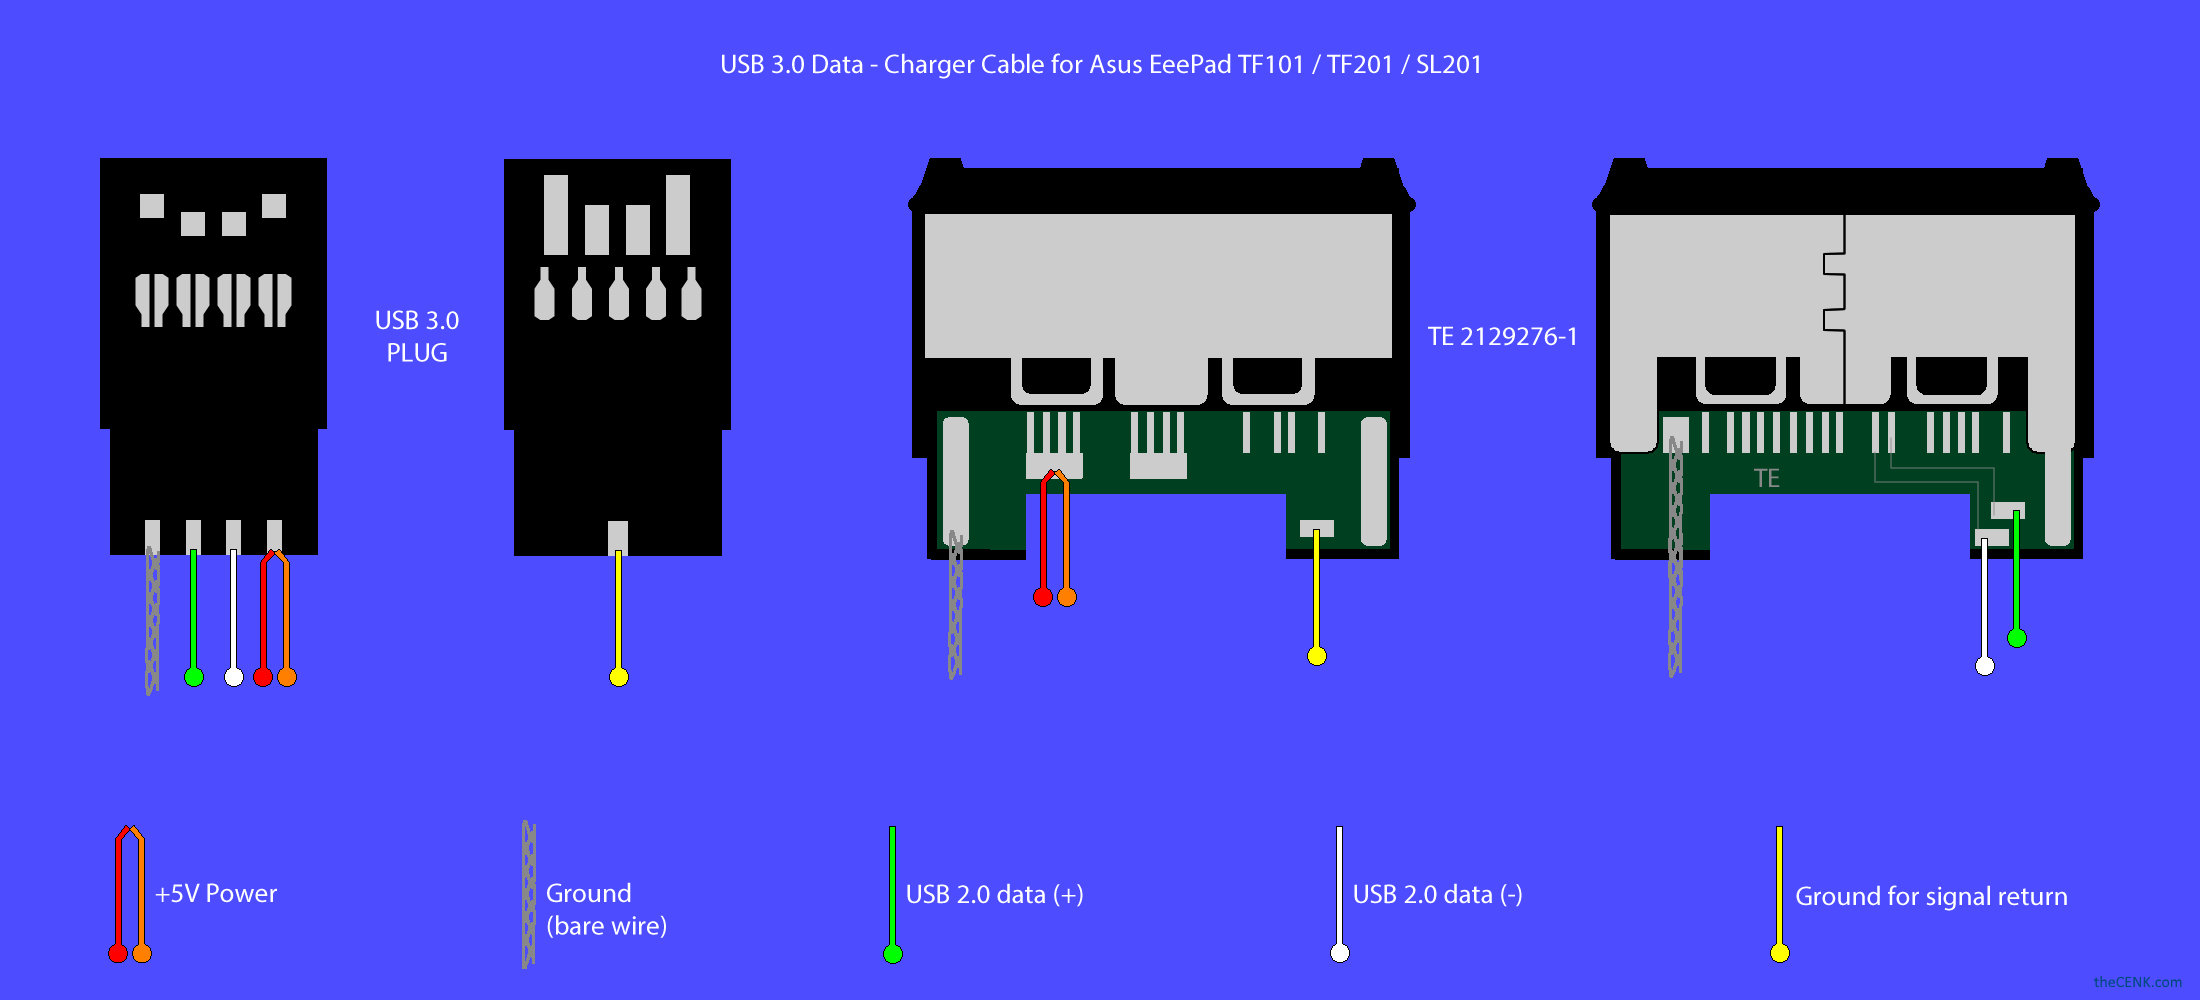 Usb 3.0 Data – Charger Cable For Asus Eeepad Tf101 / Tf201 / Sl201 - Usb 3.0 Adapter Wiring Diagram